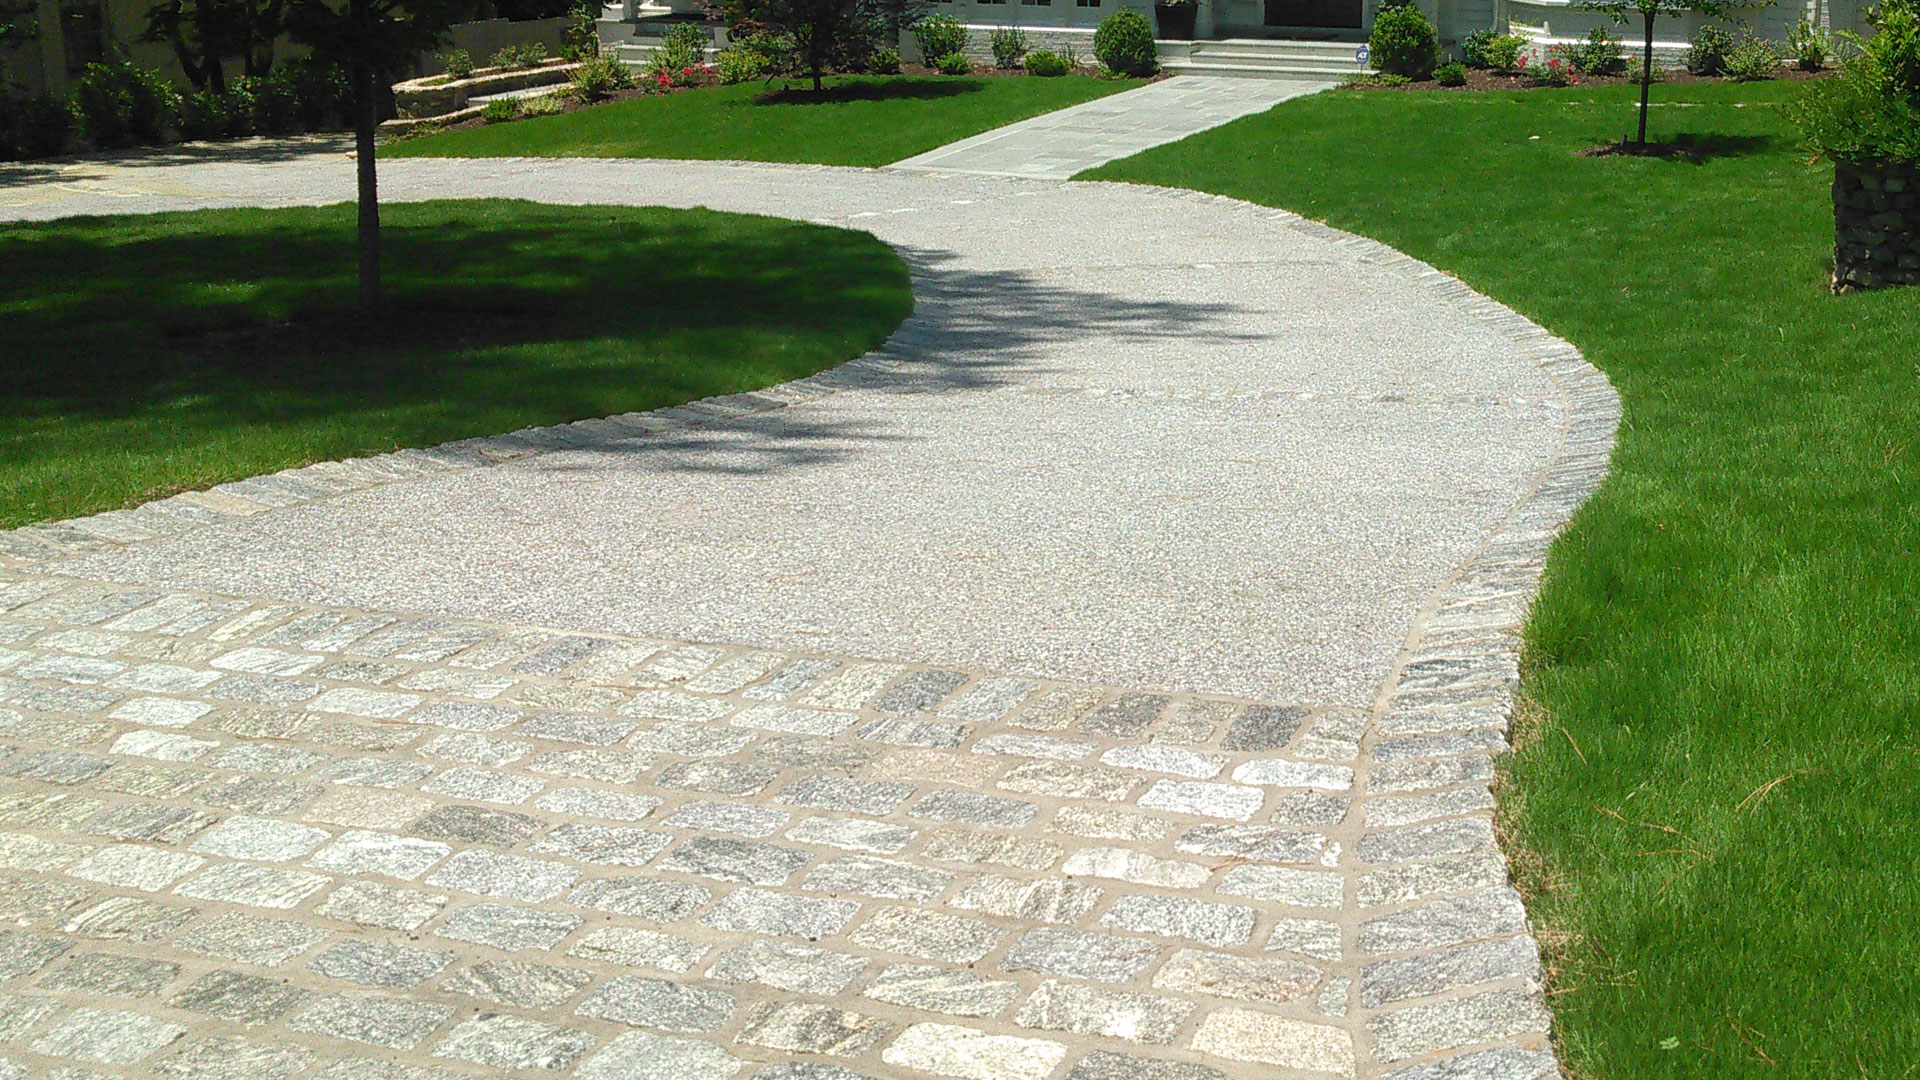 Paver driveways built to add additional parking at a home in Atlanta, GA.